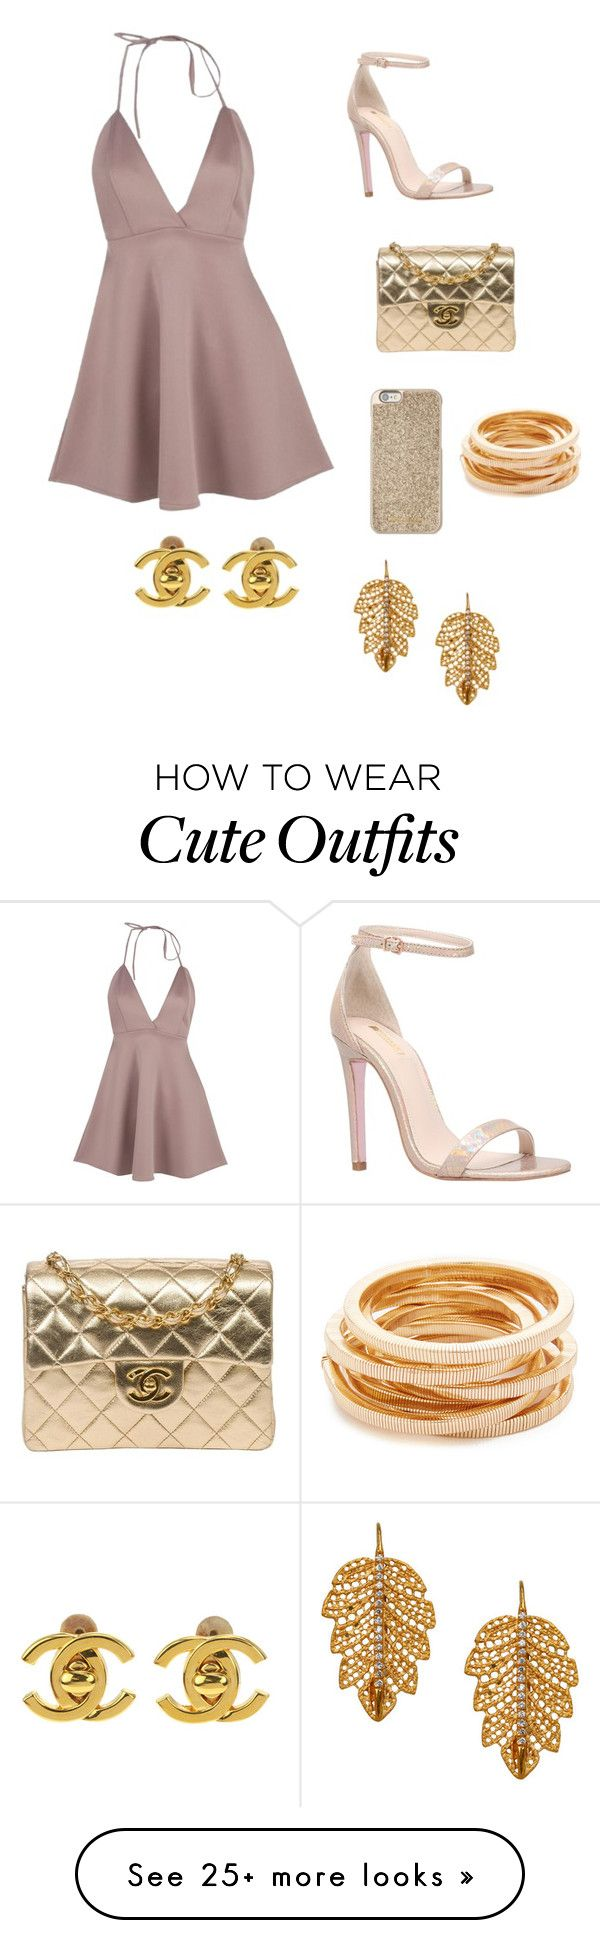 """""""Perfect Cute Girly Outfit """" by lsantana13 on Polyvore featuring Boohoo, Carvela, Chanel, Michael Kors, Kenneth Jay Lane and Marika"""